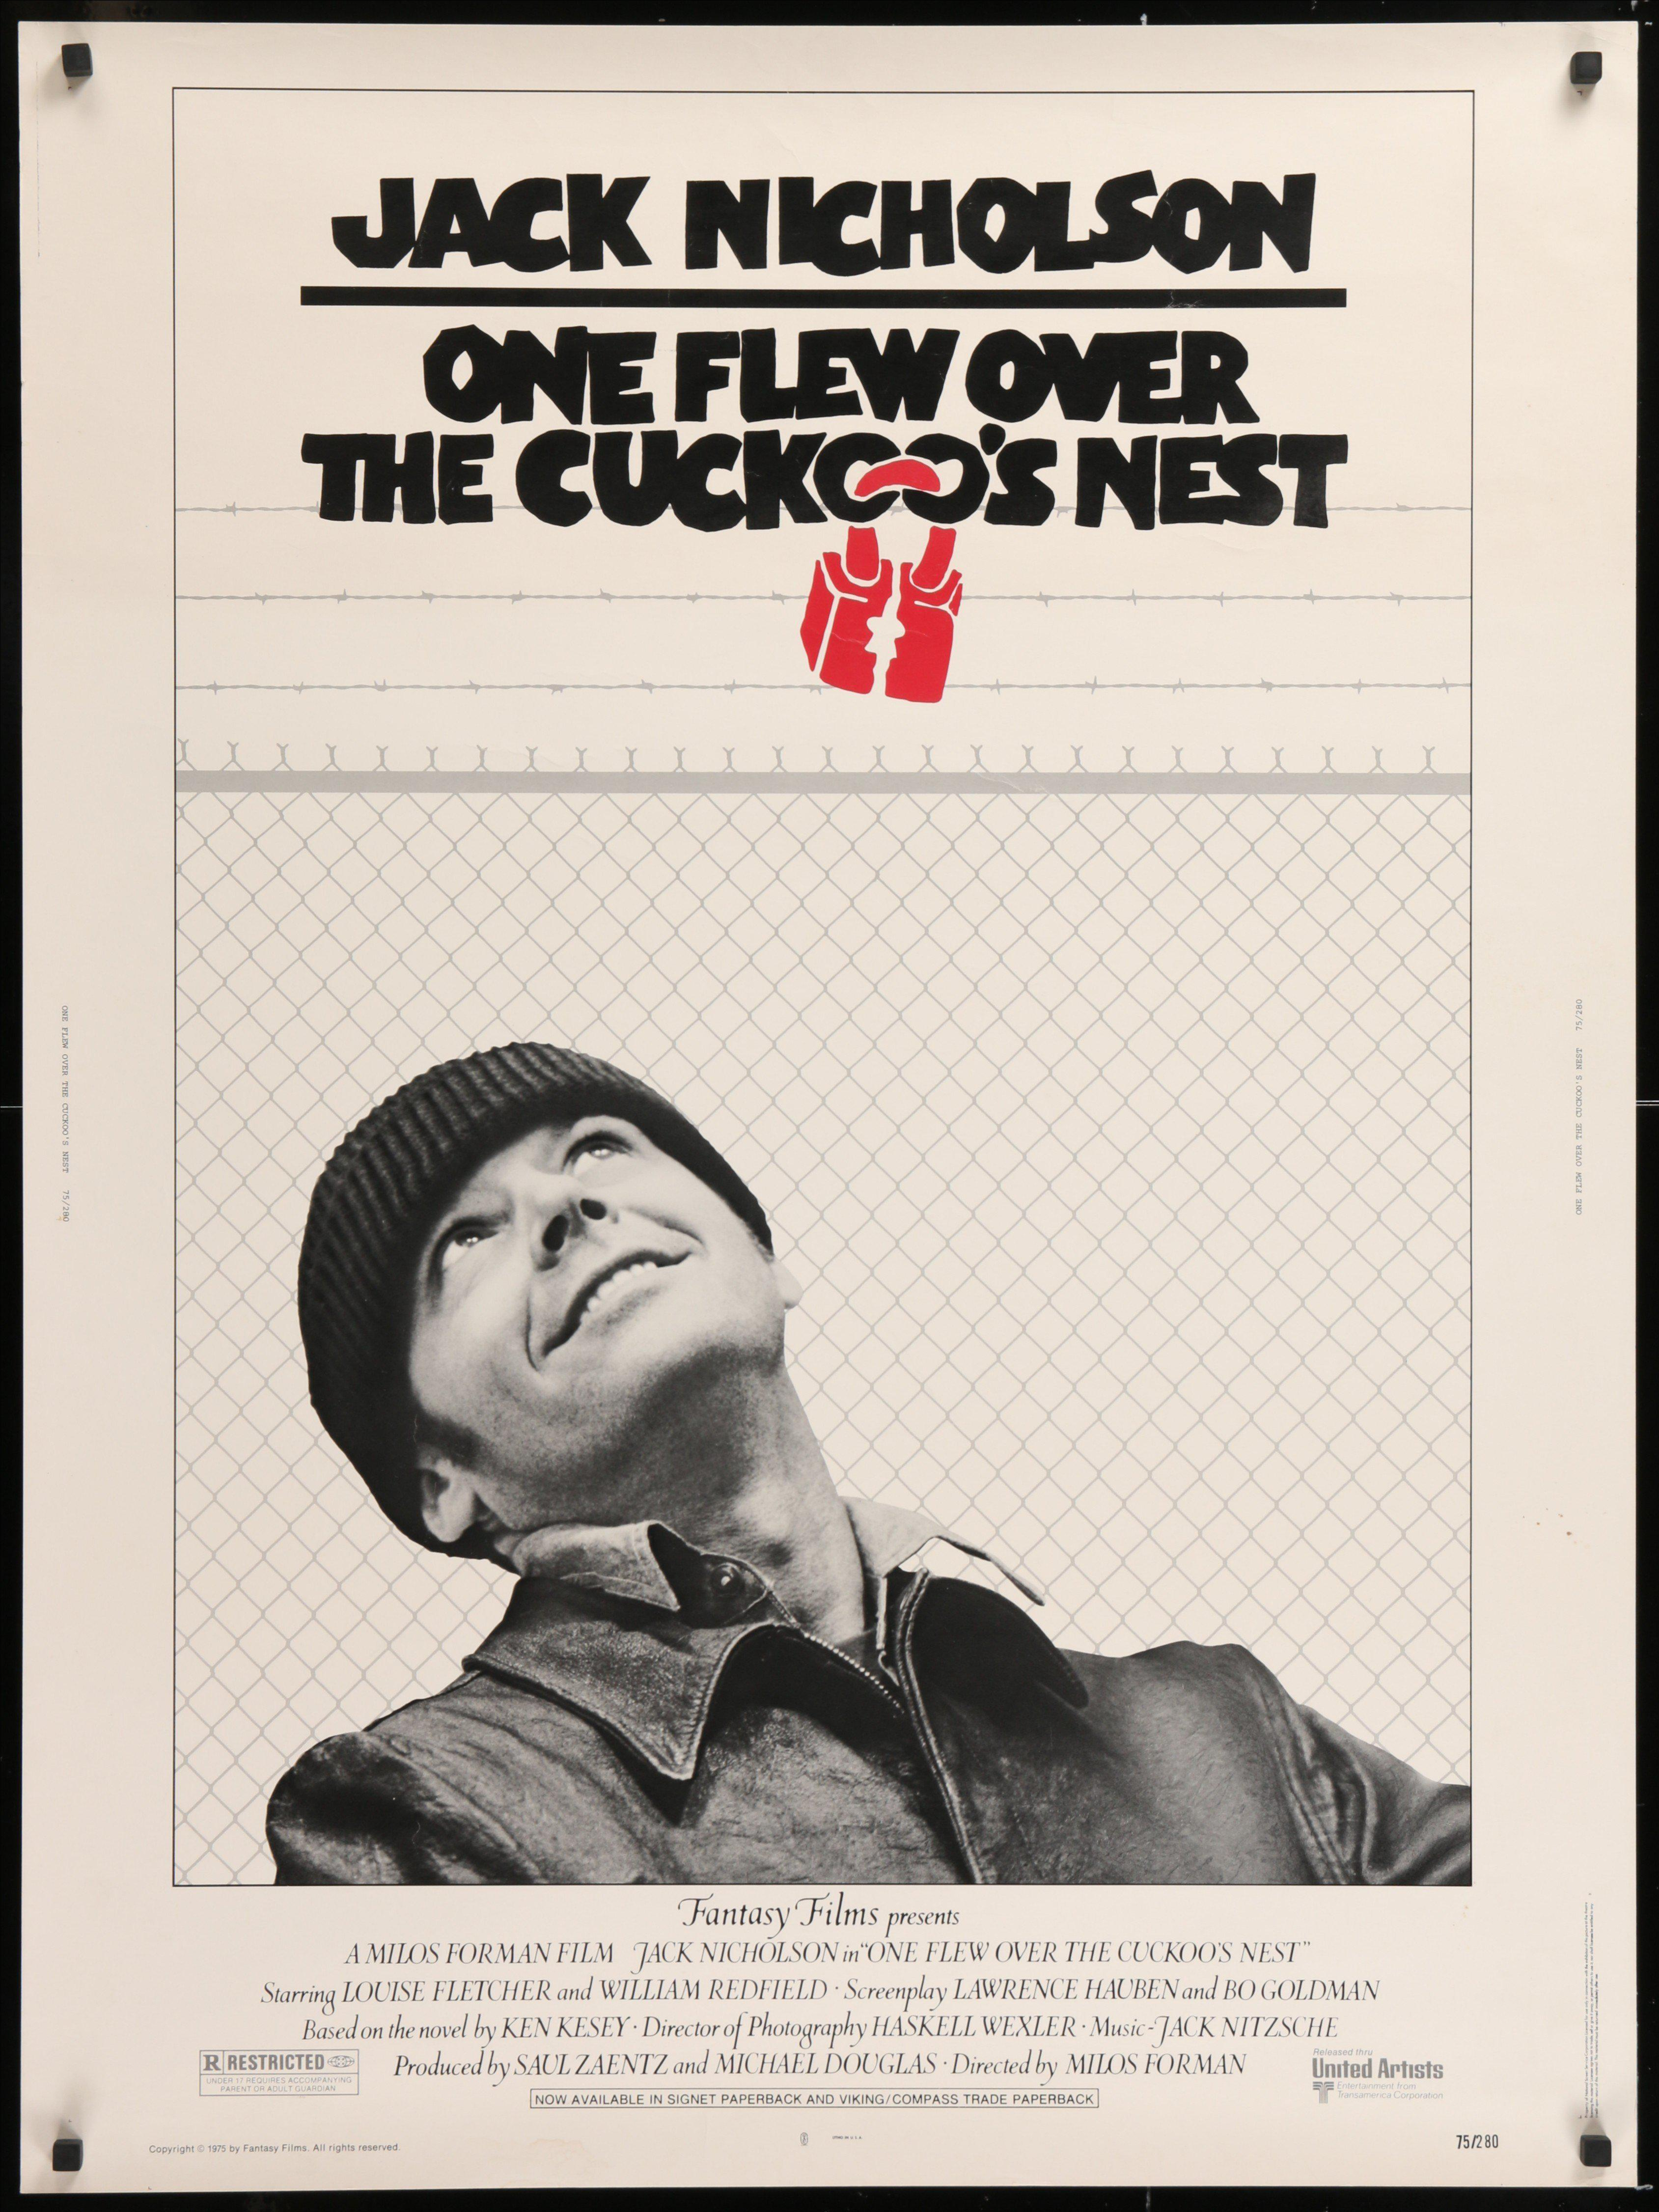 One Flew Over the Cuckoo's Nest 30x40 Original Vintage Movie Poster